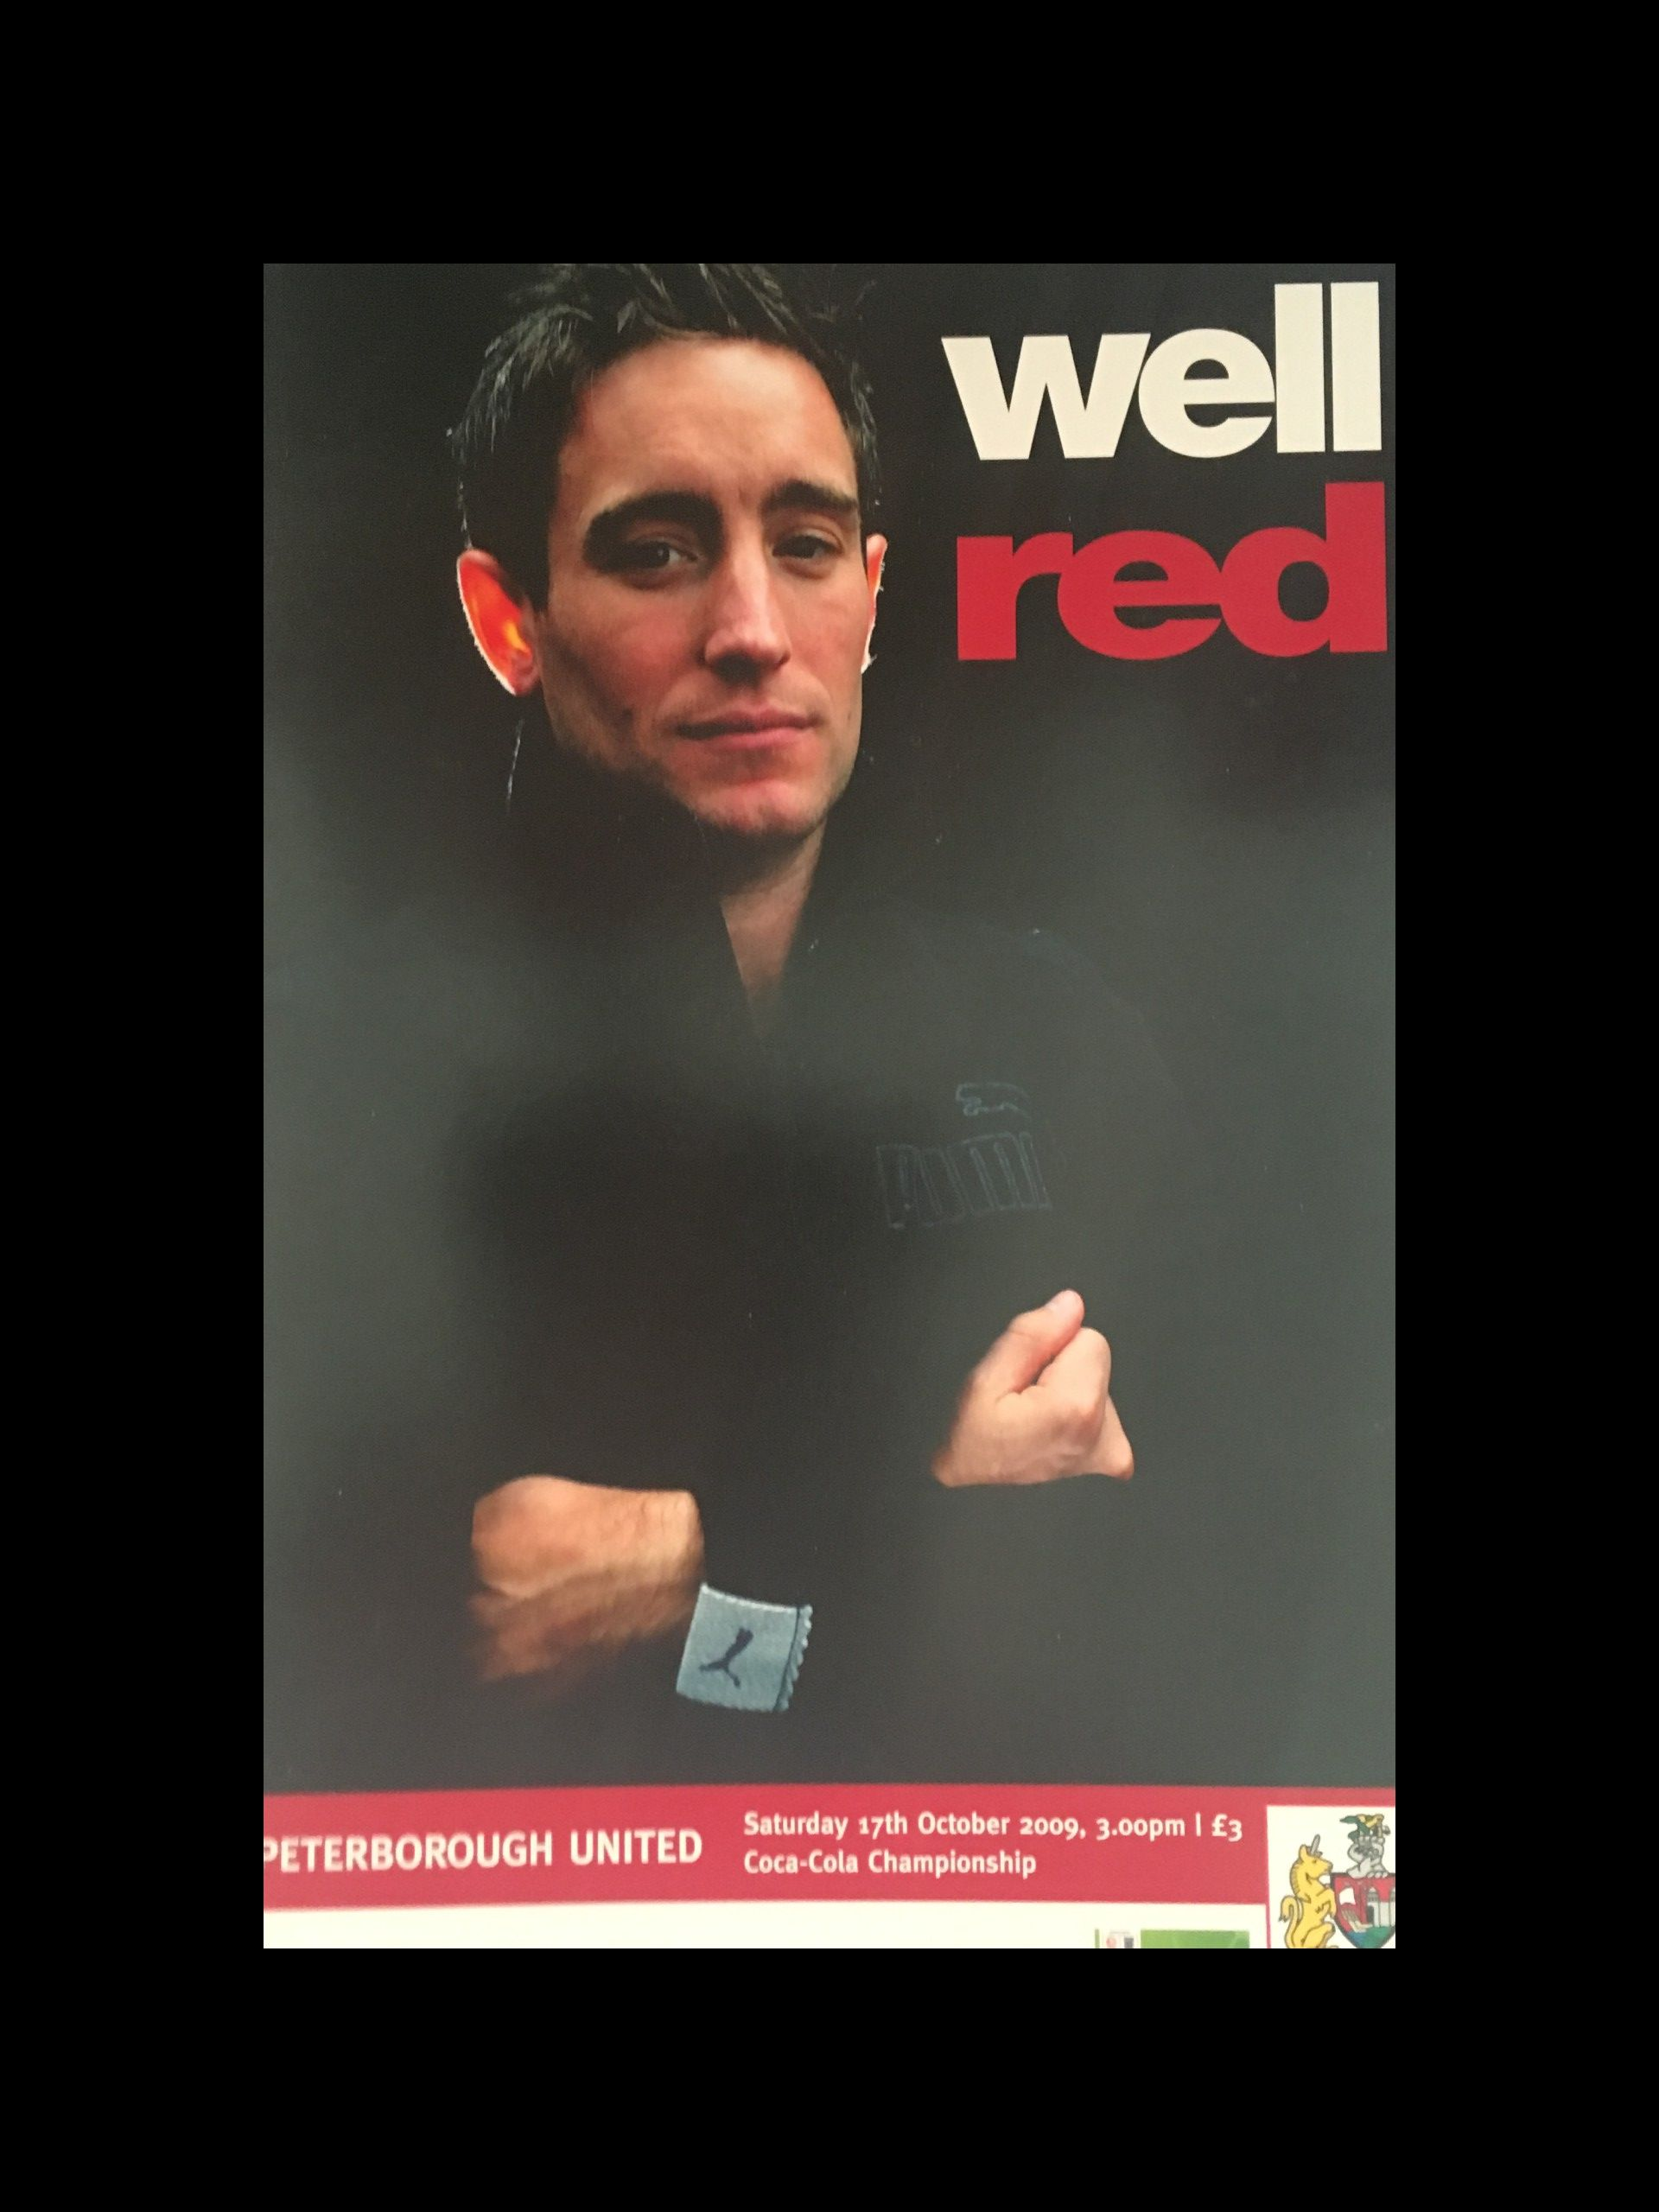 Bristol City v Peterborough United 17-10-2009 Programme